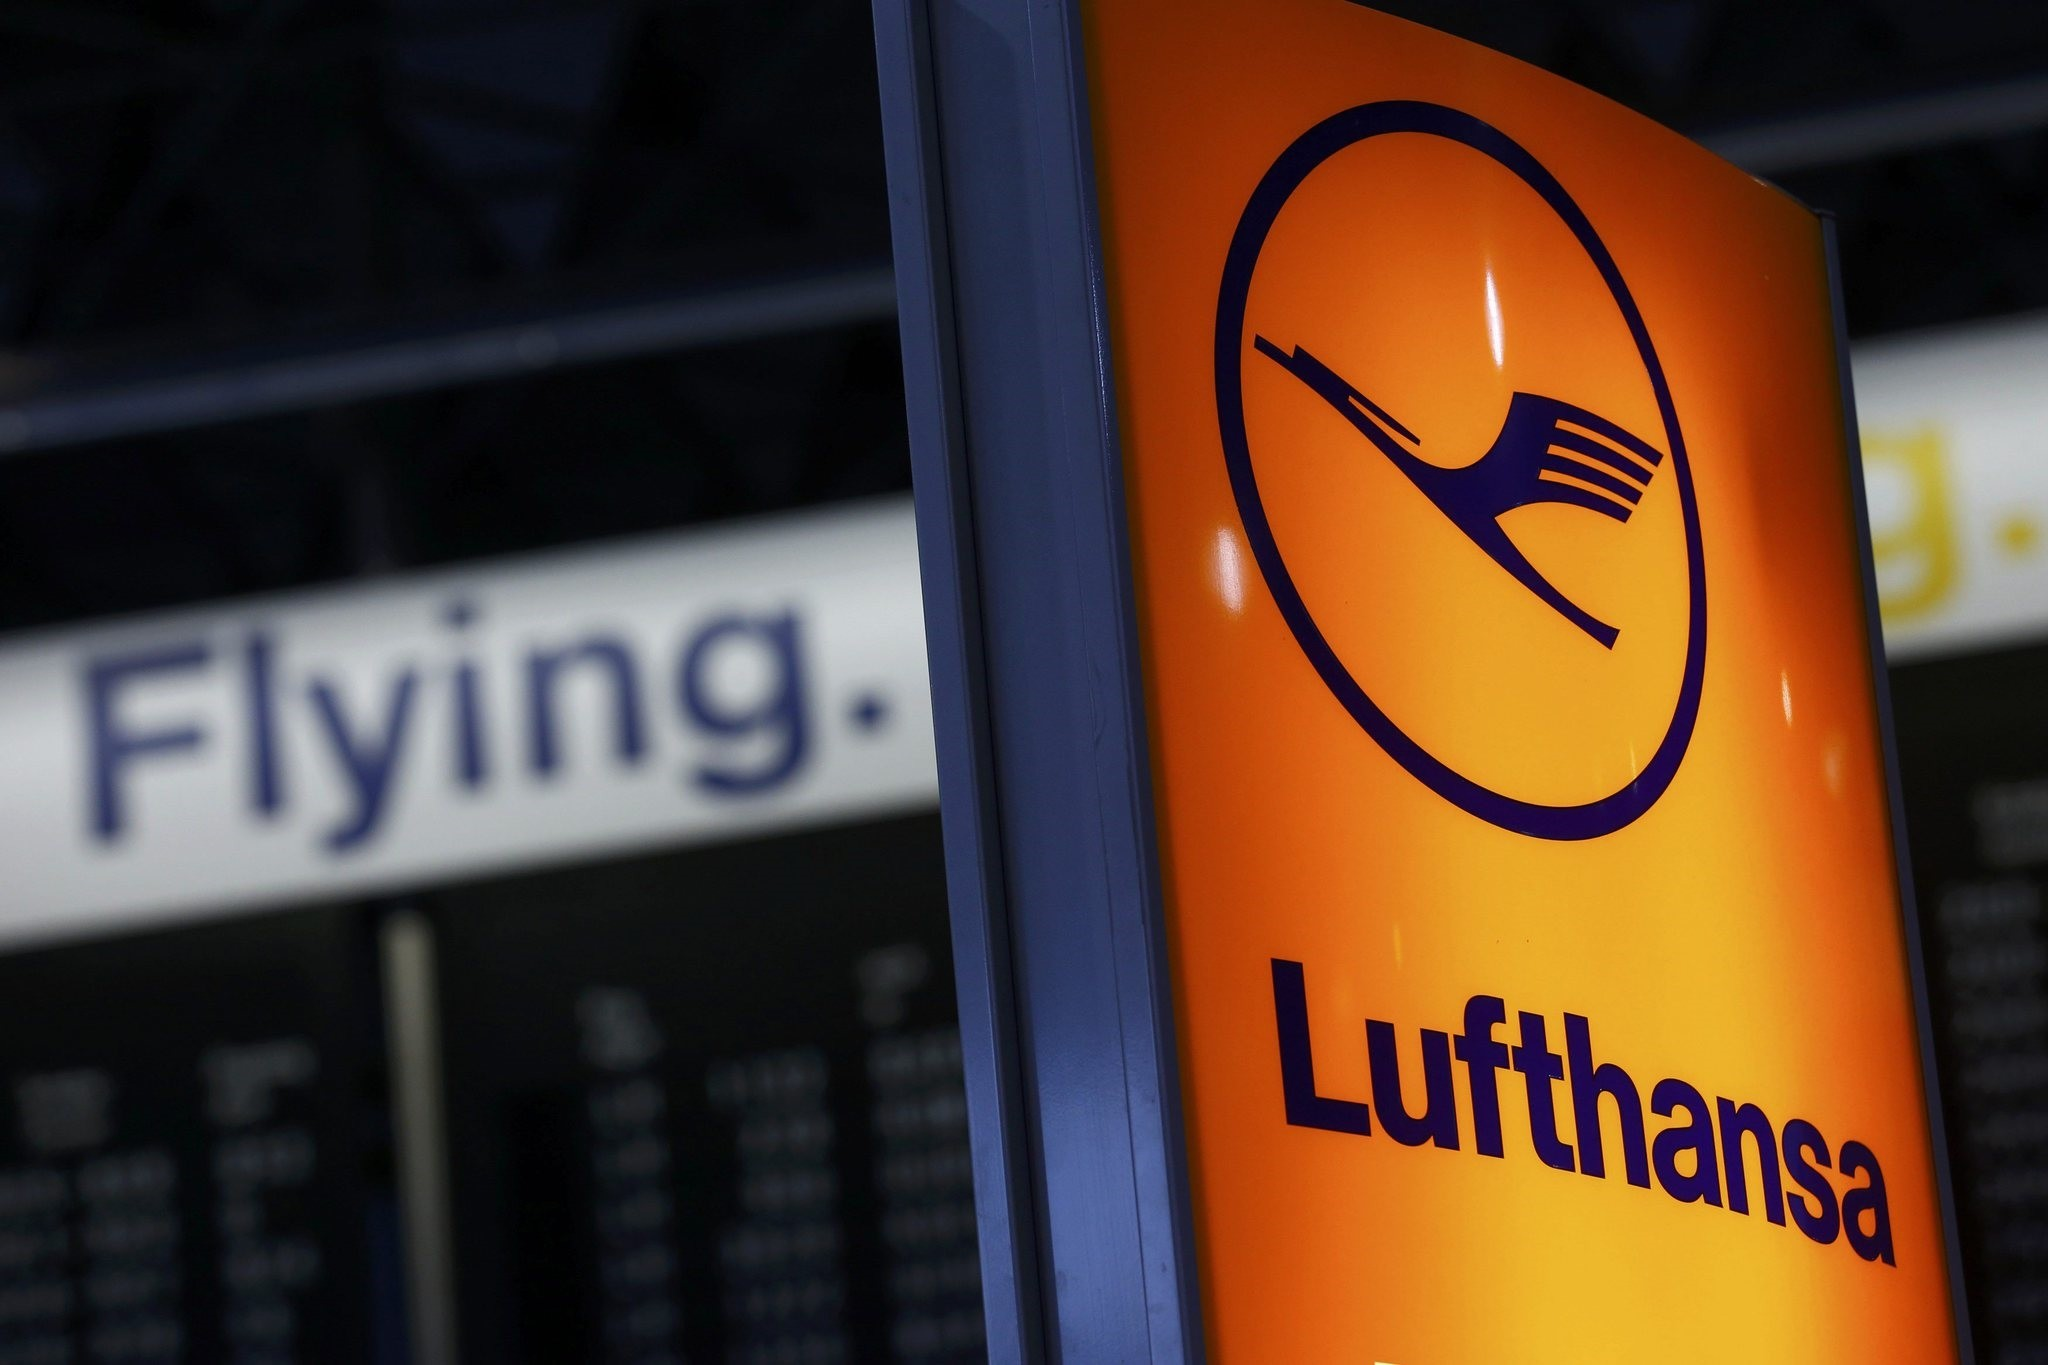 A Lufthansa airline logo is pictured in Frankfurt airport, Germany, November 6, 2015. (REUTERS Photo)